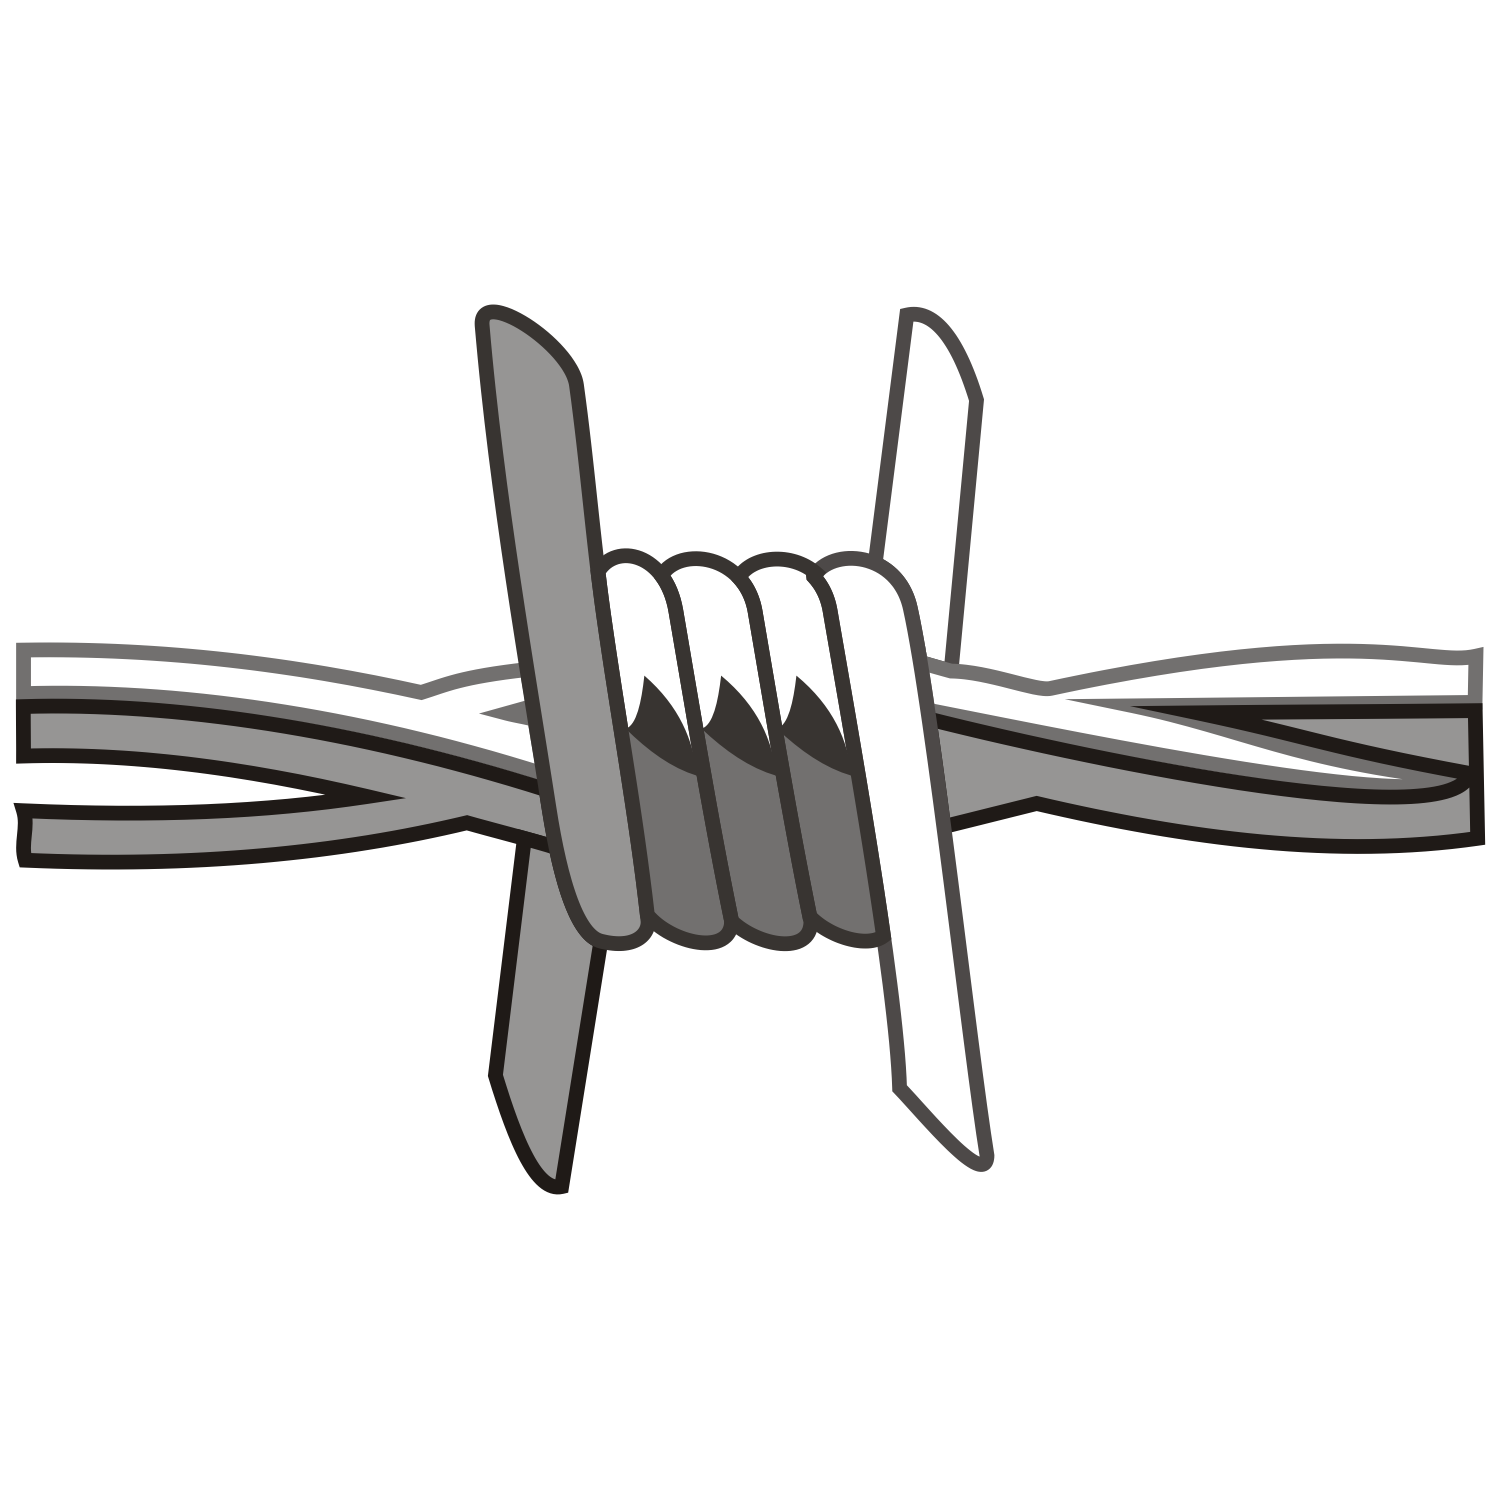 Barbed Wire Borders - ClipArt Best